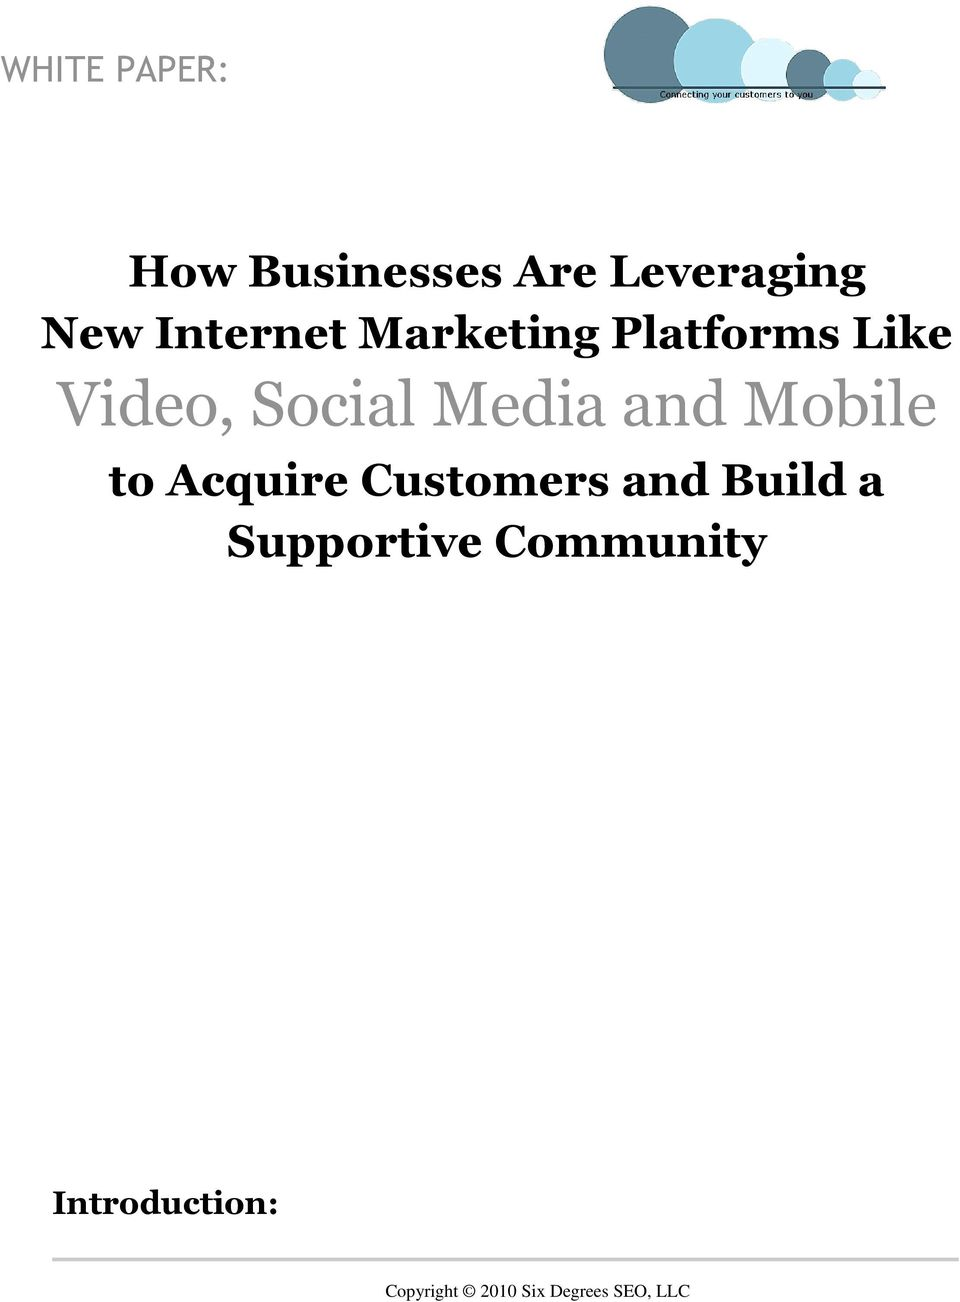 Social Media and Mobile to Acquire Customers